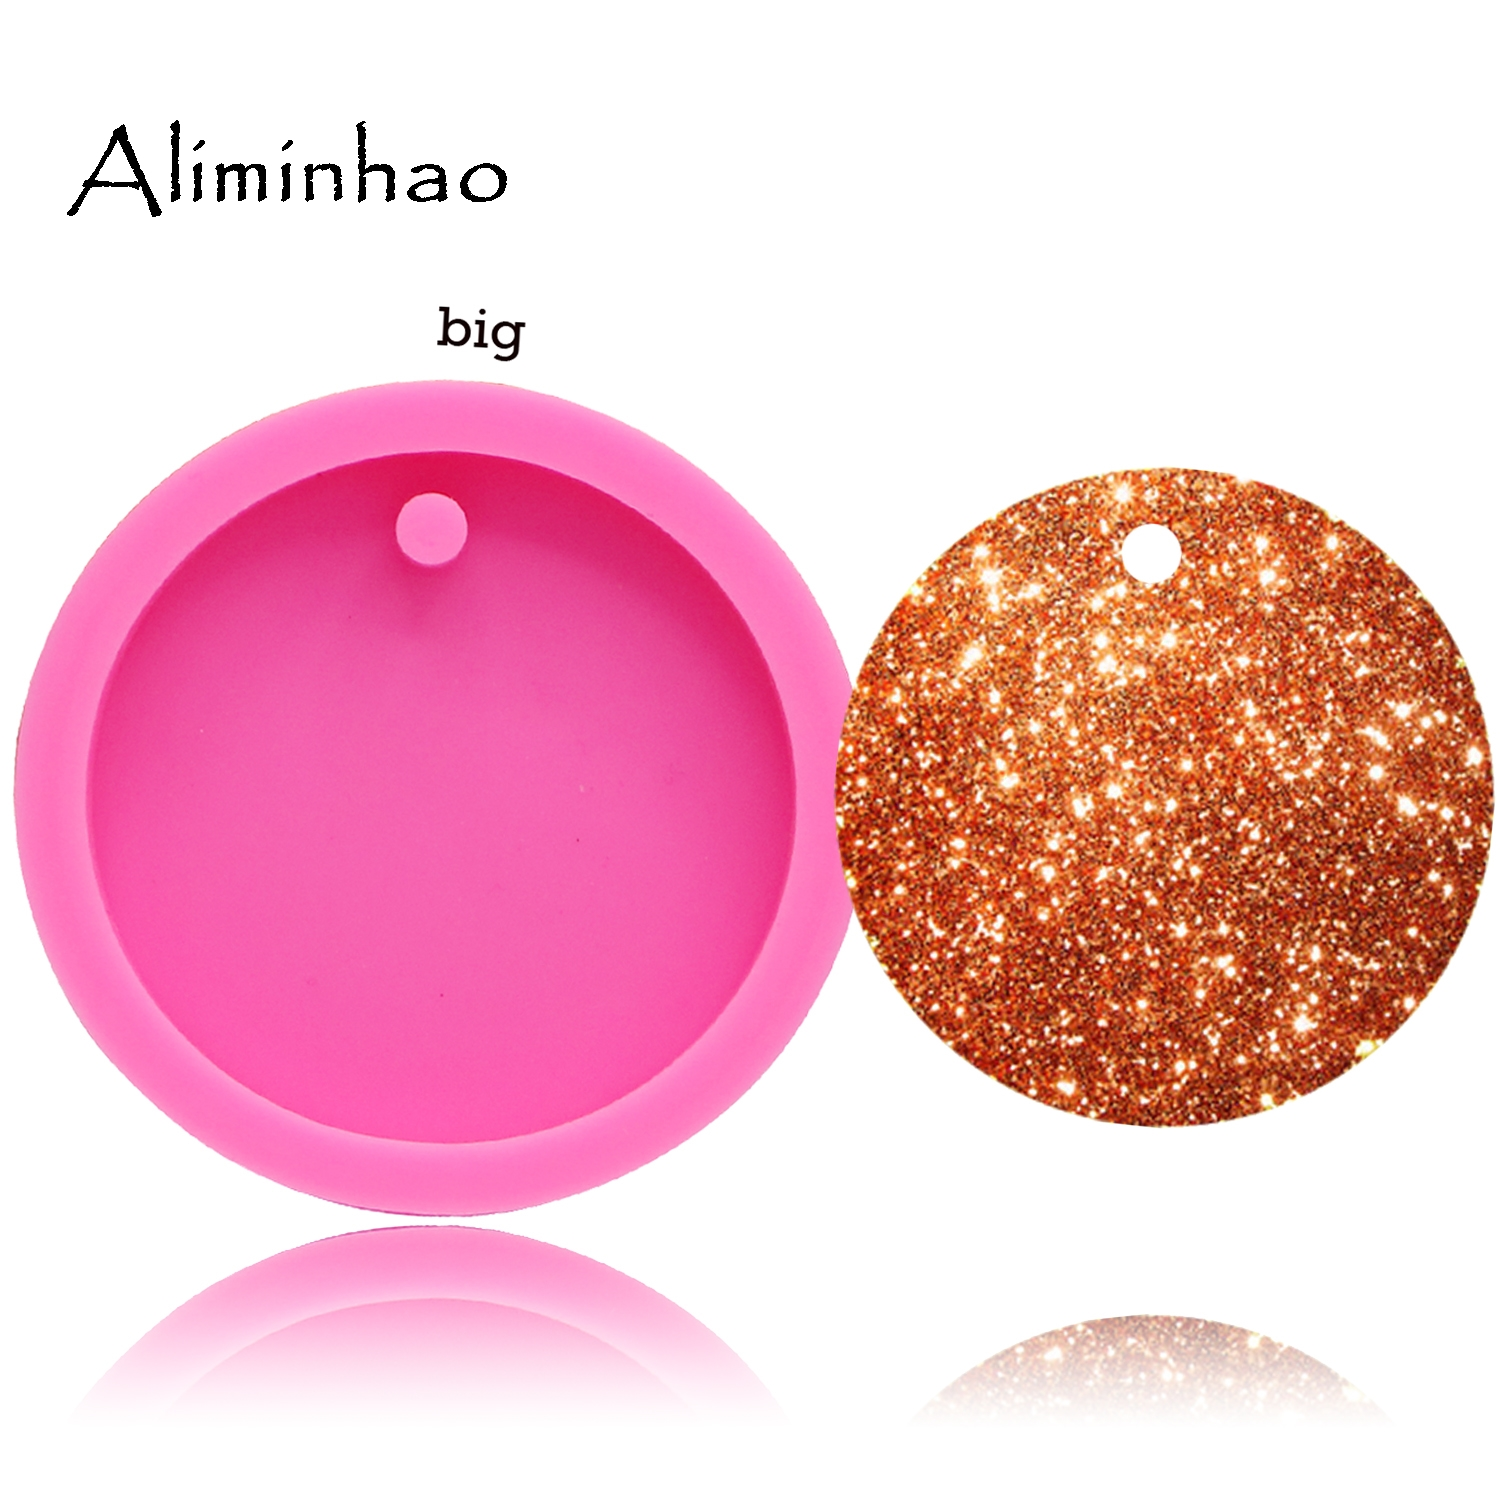 DY0079 50mm/75mm shiny Round Circle With Hole Disk Keychains silicone mold for Key chain Pendant clay DIY Resin mold